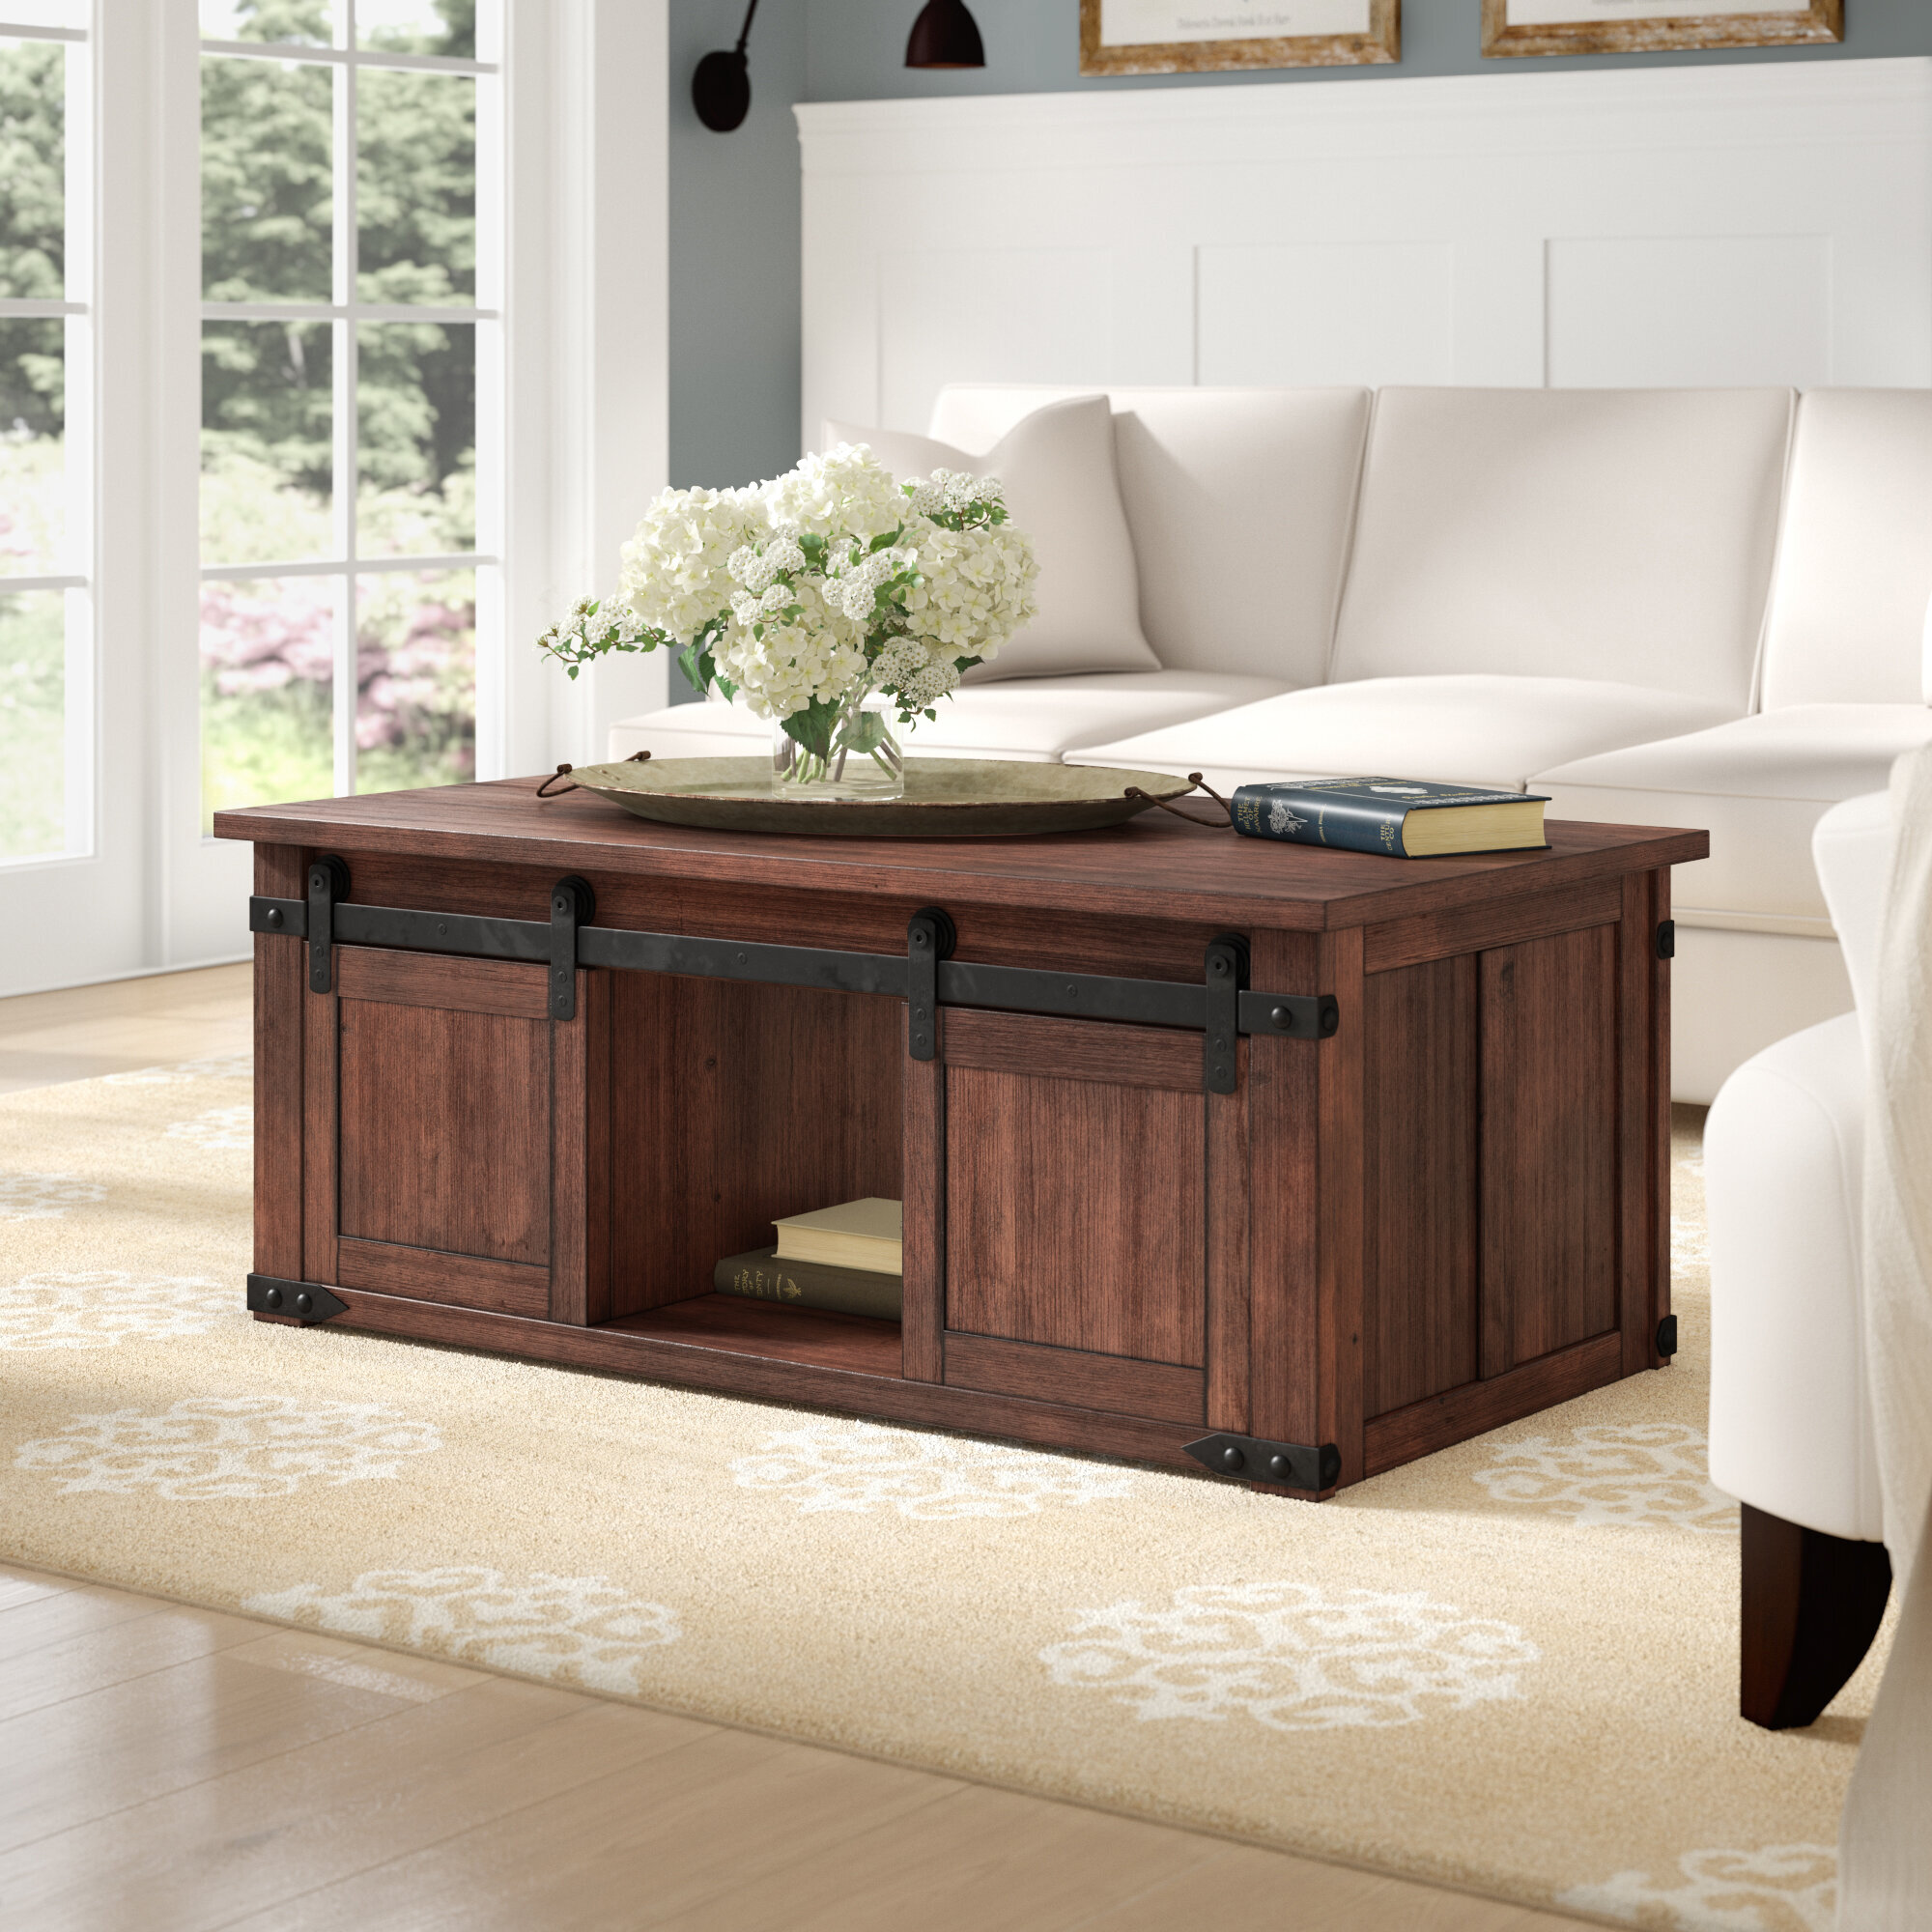 Laurel Foundry Modern Farmhouse Rosa Solid Wood Coffee Table With Storage Reviews Wayfair